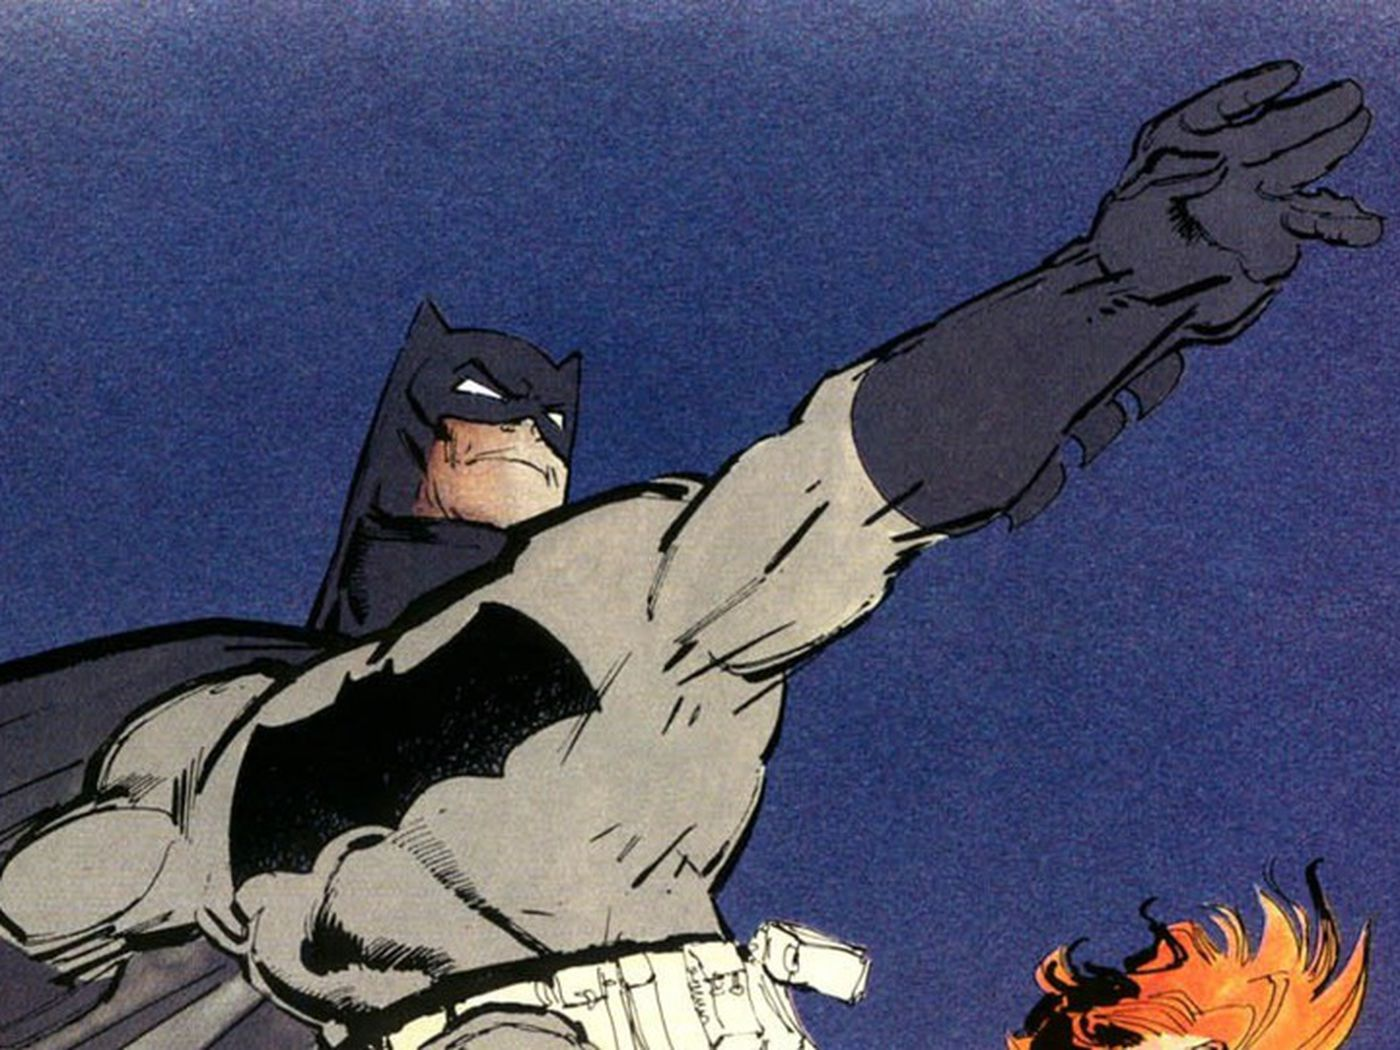 Frank Miller gave us the best Batman — and the worst - Vox dbf150ec4